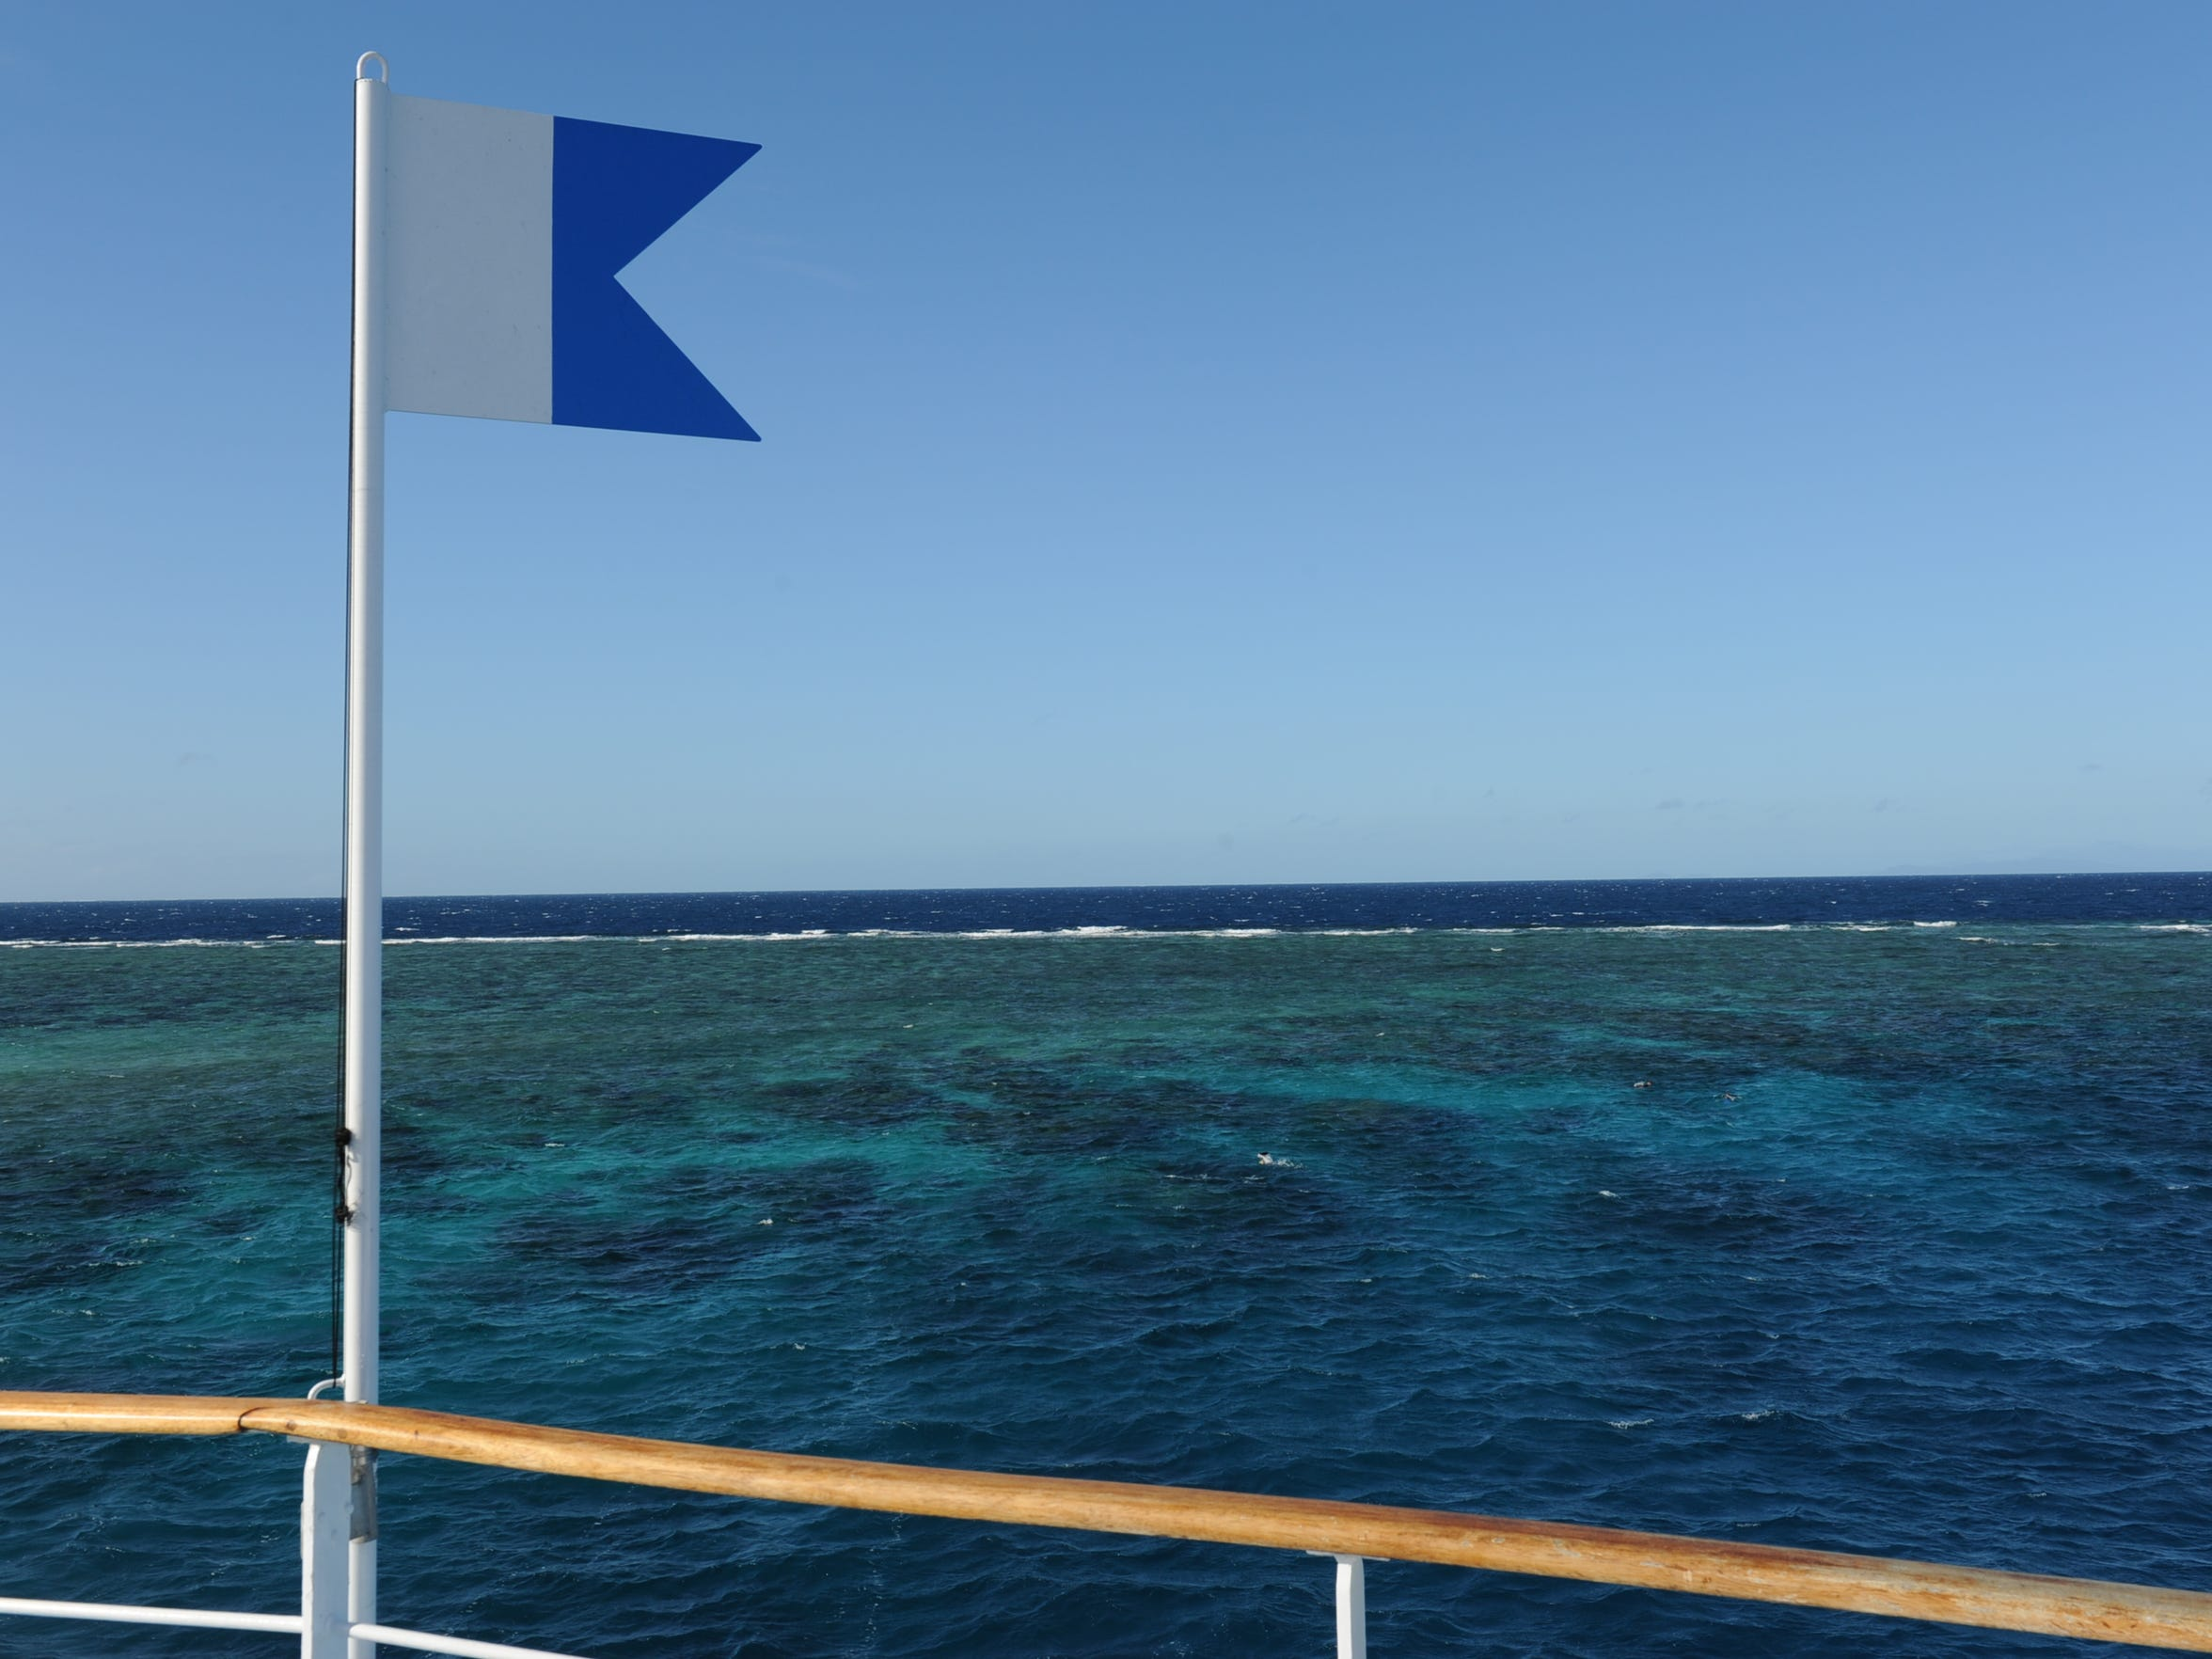 A view of the Great Barrier Reef from the deck of a